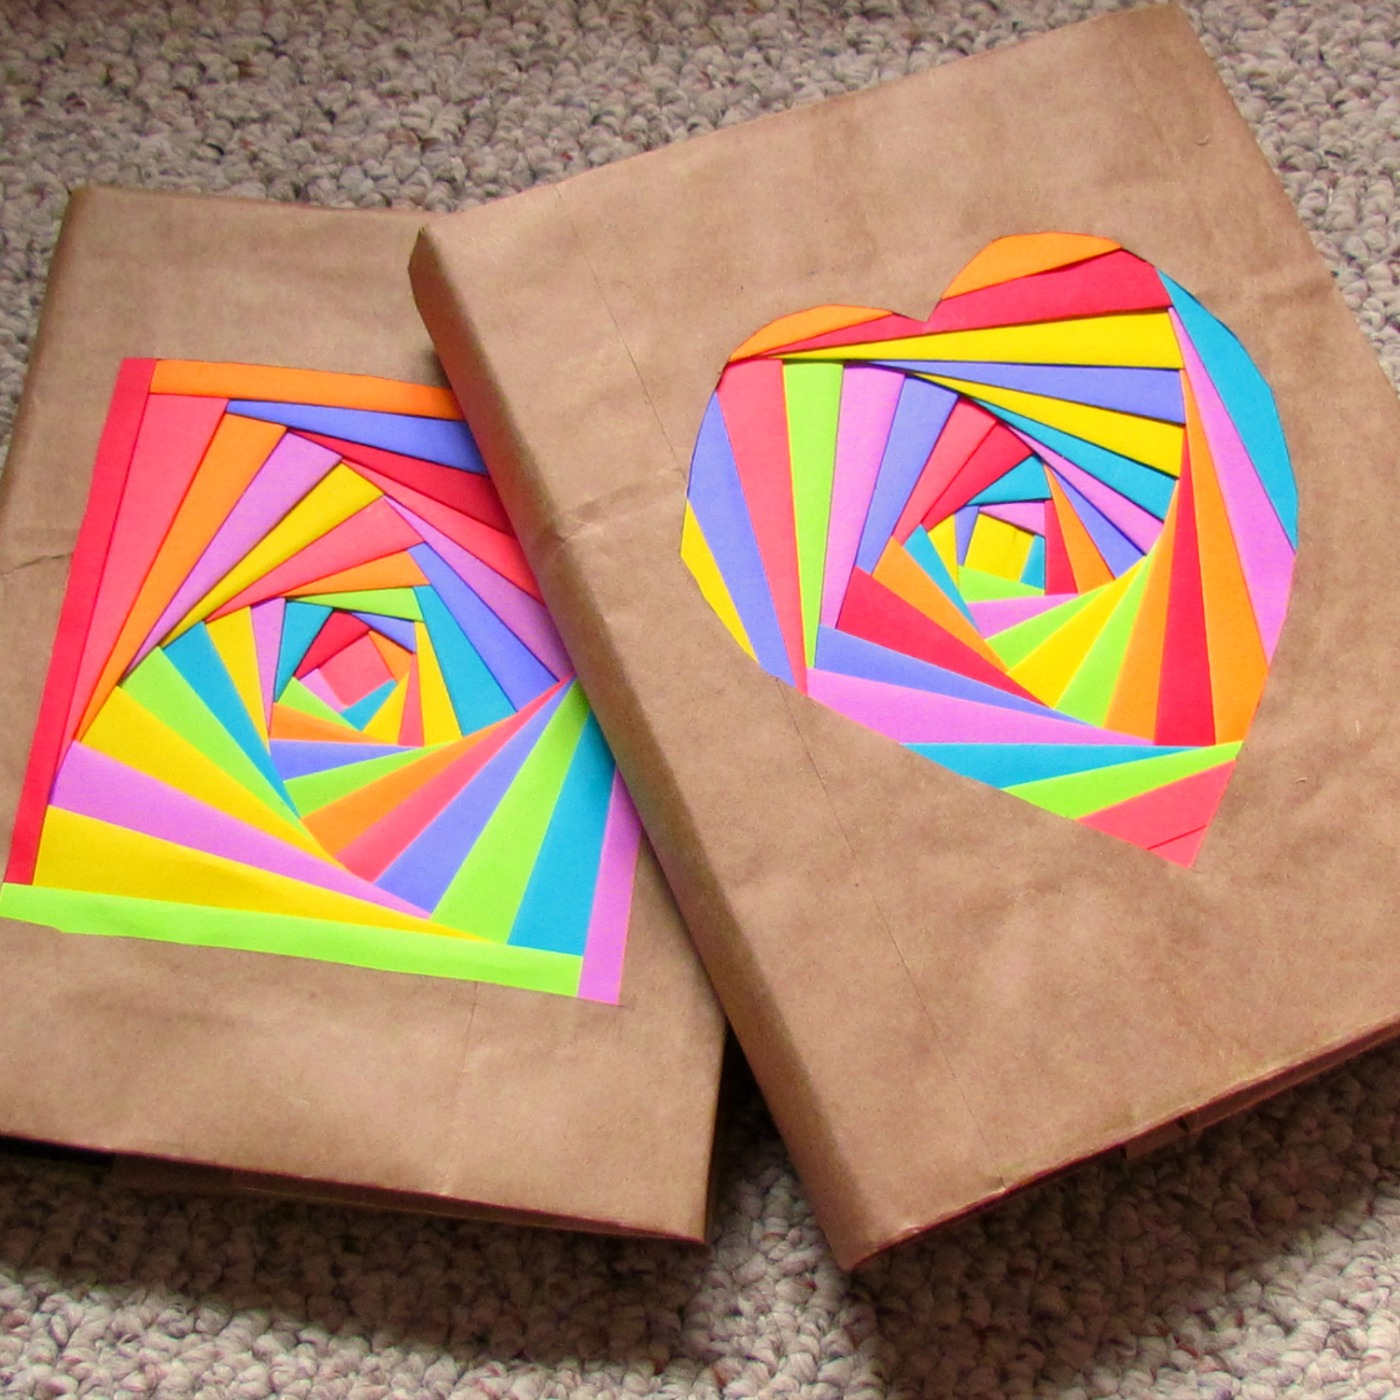 Design Book Cover School Project : Creating colorful book covers with astrobrights papers